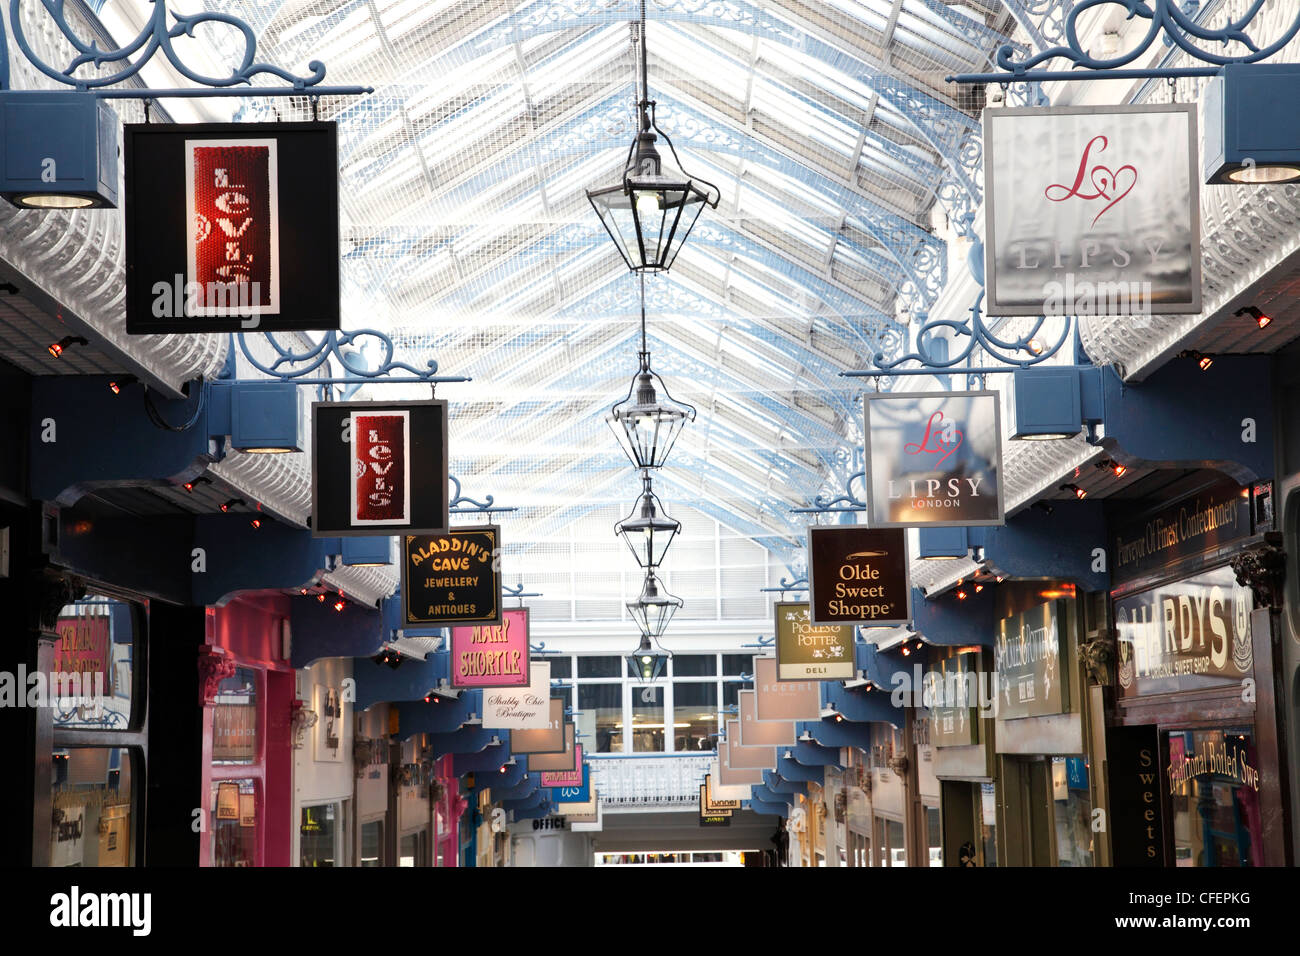 Queens Arcade, Leeds, West Yorkshire, England, U.K. - Stock Image